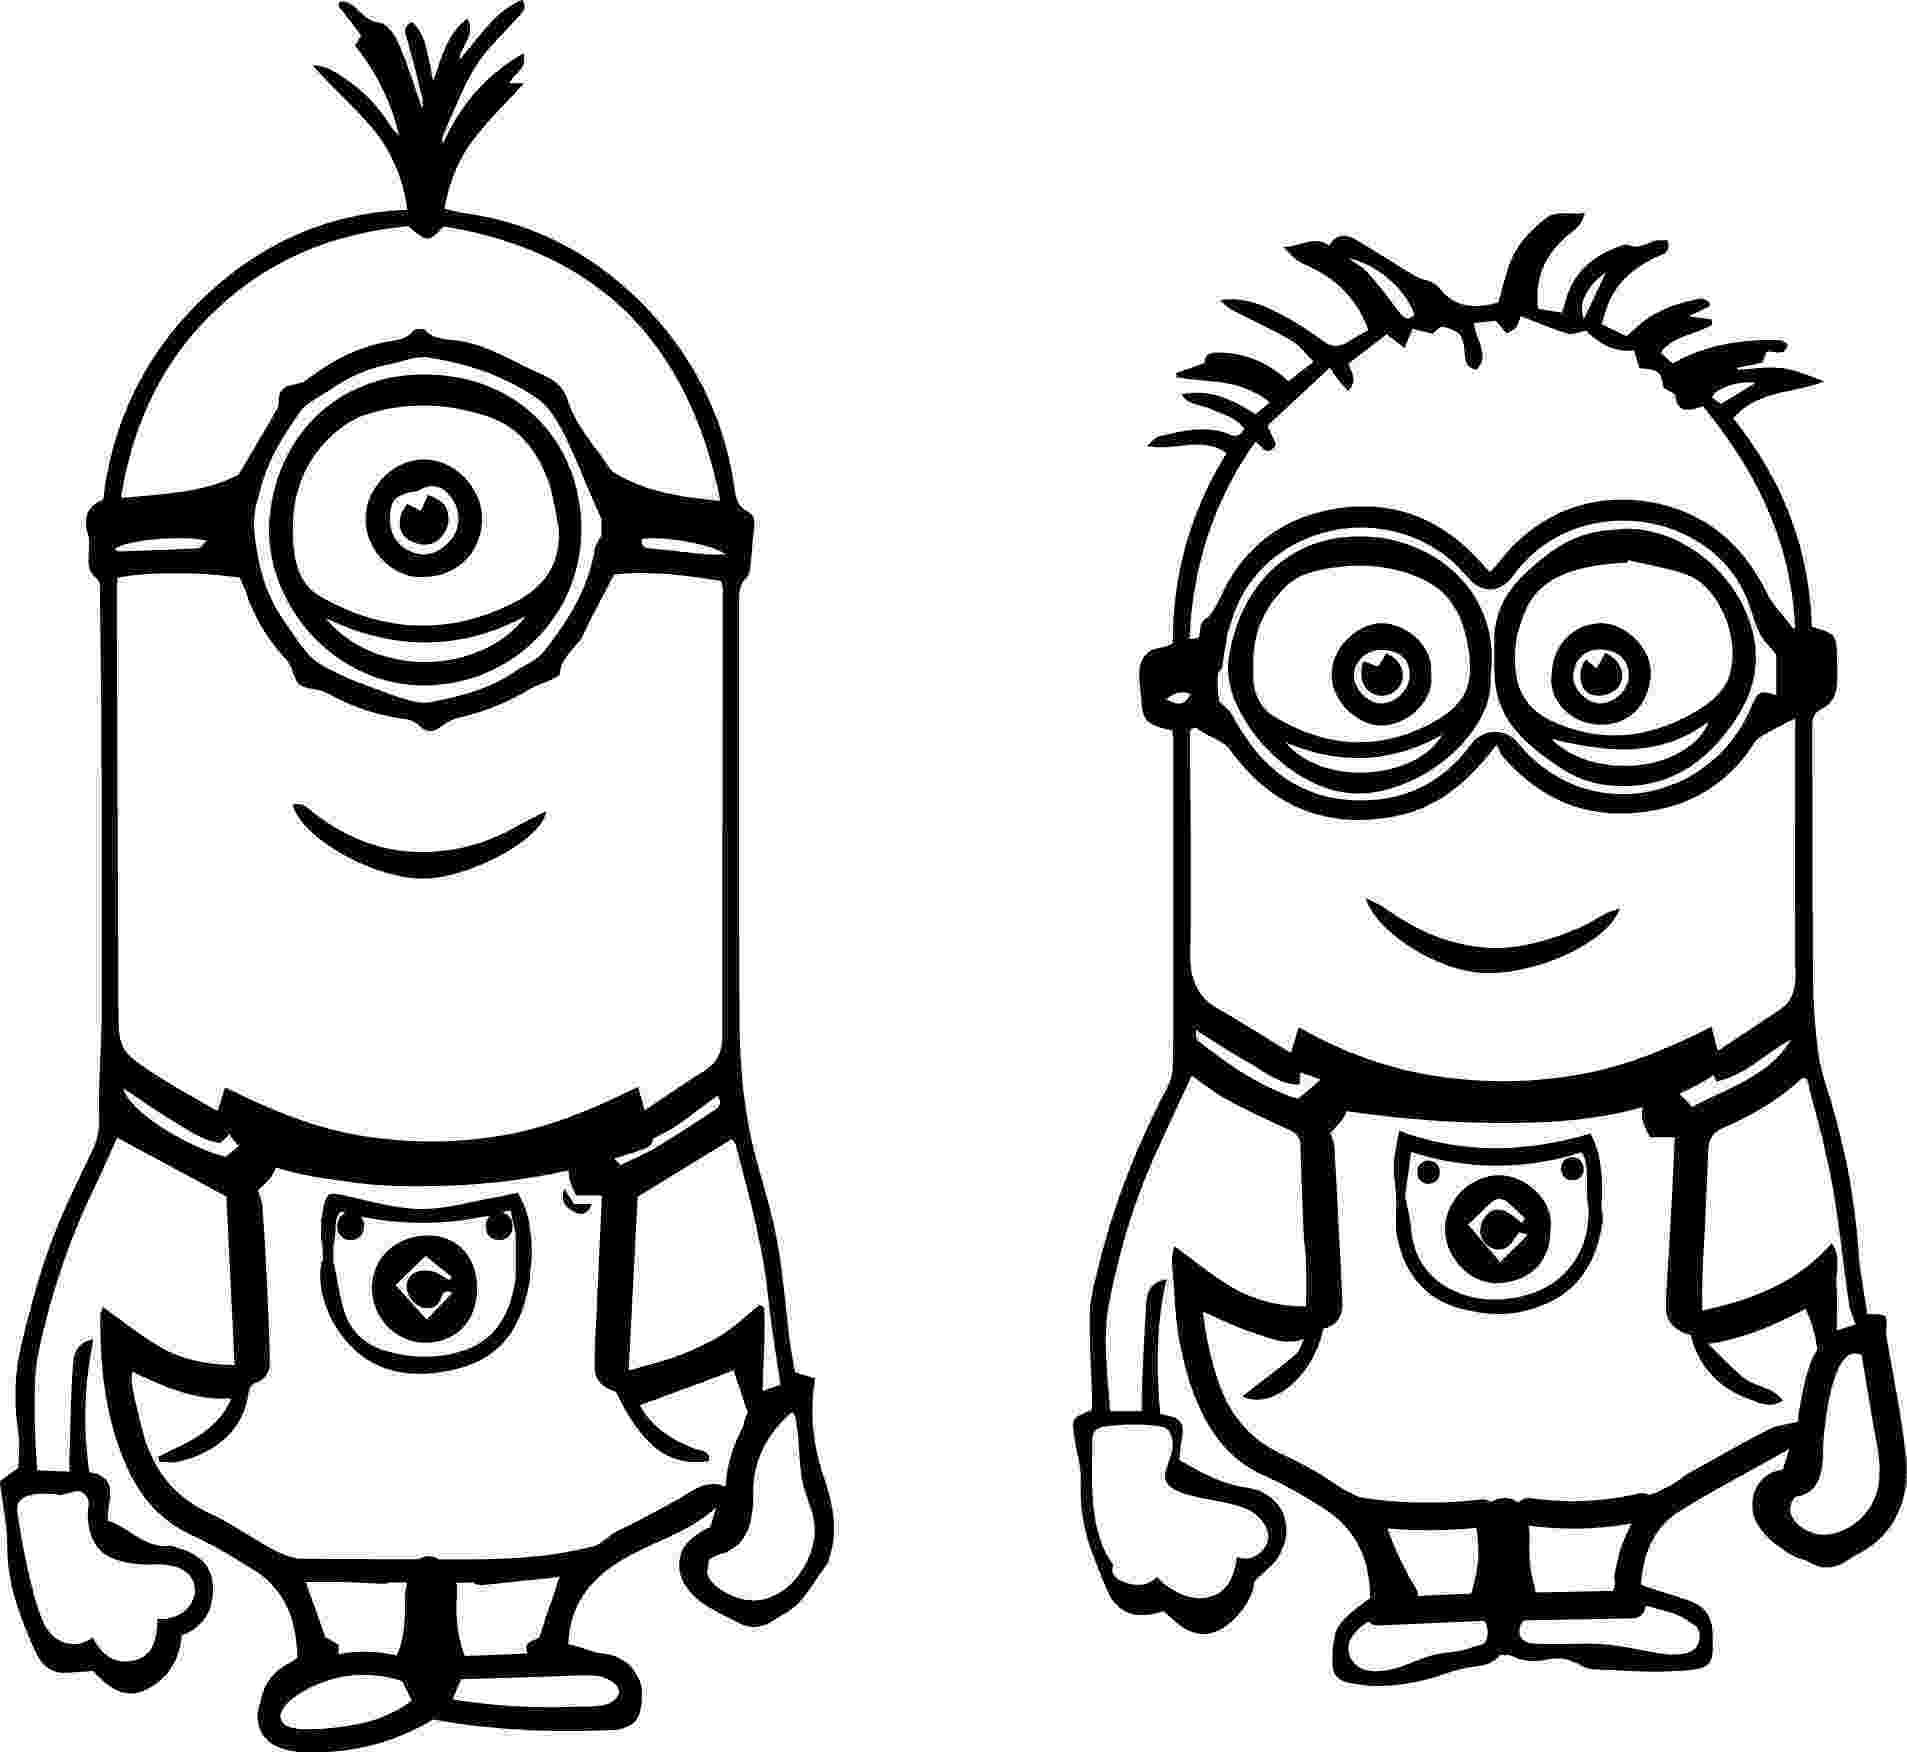 printable pictures of minions to print minion coloring pages from despicable me for free minions of printable pictures